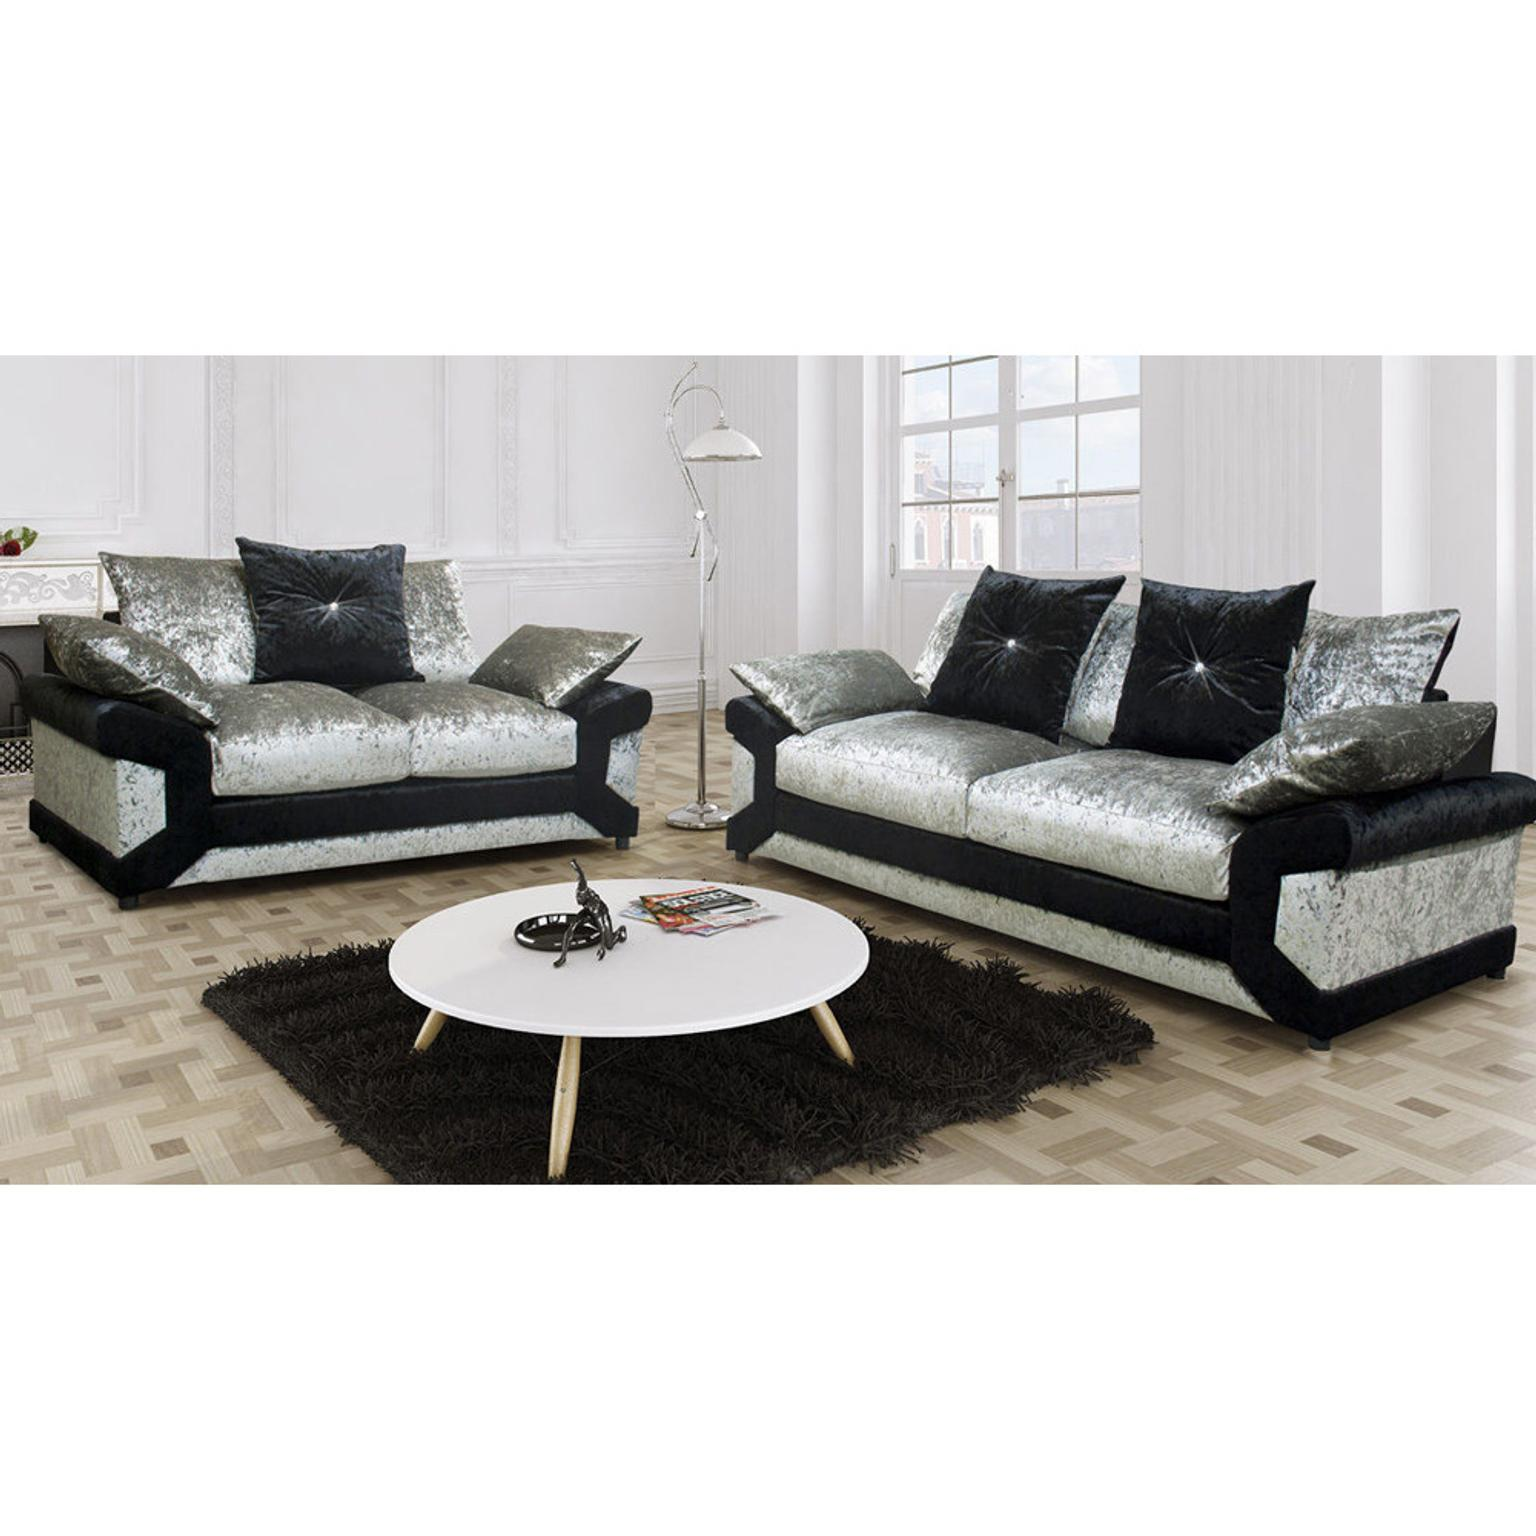 Dino 3 2 Seater Sofa Set Silver In Ls7